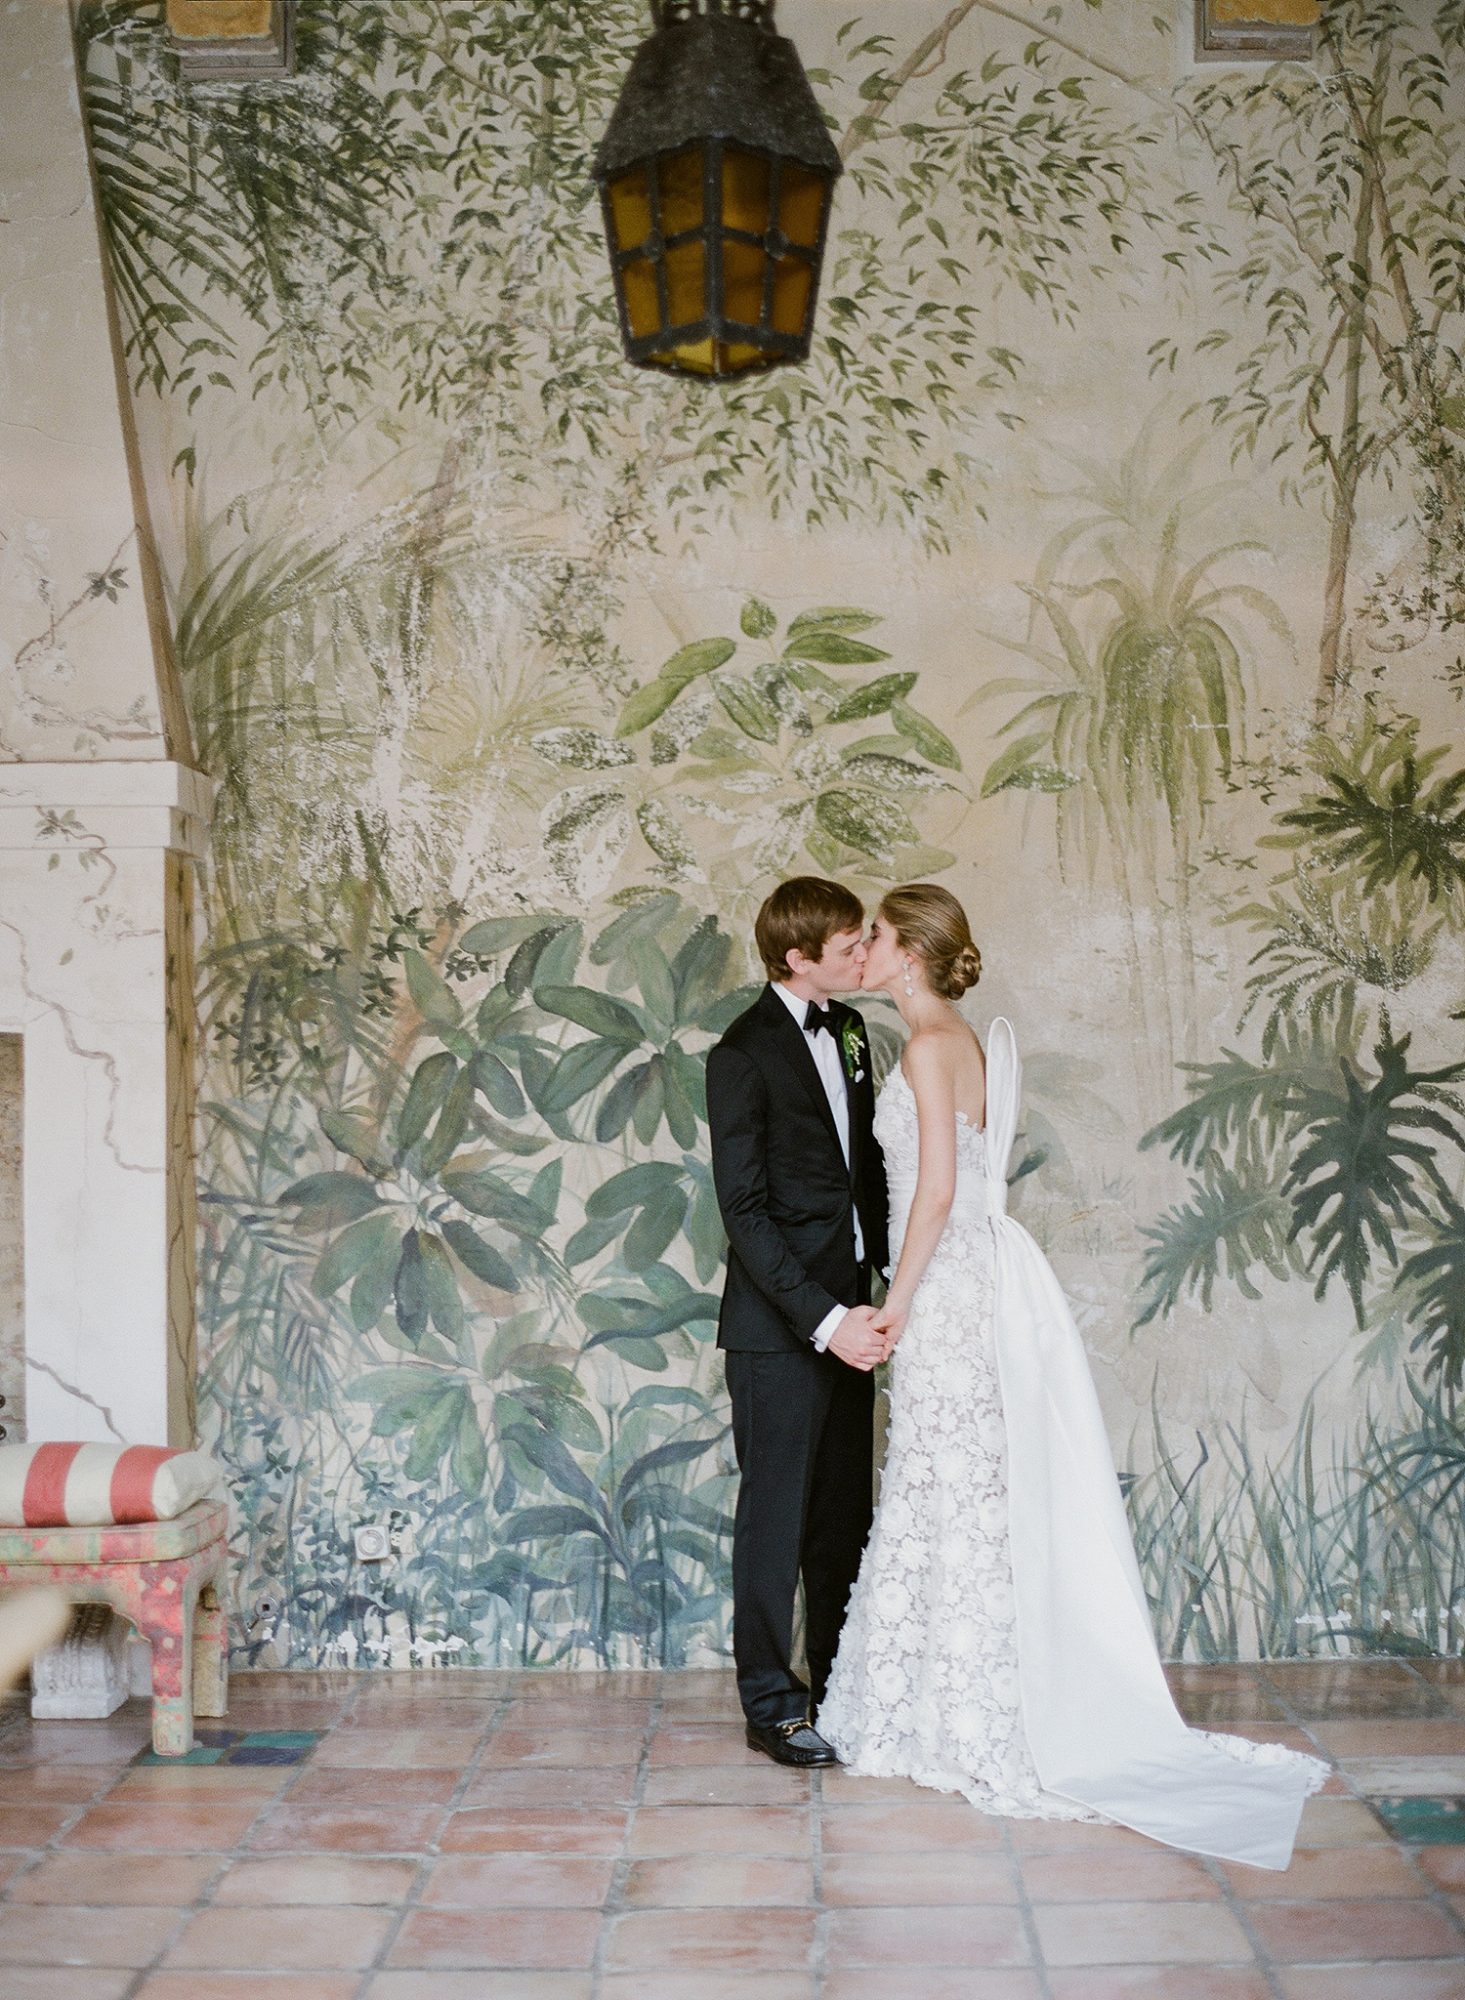 chelsea conor wedding couple kissing in front of mural